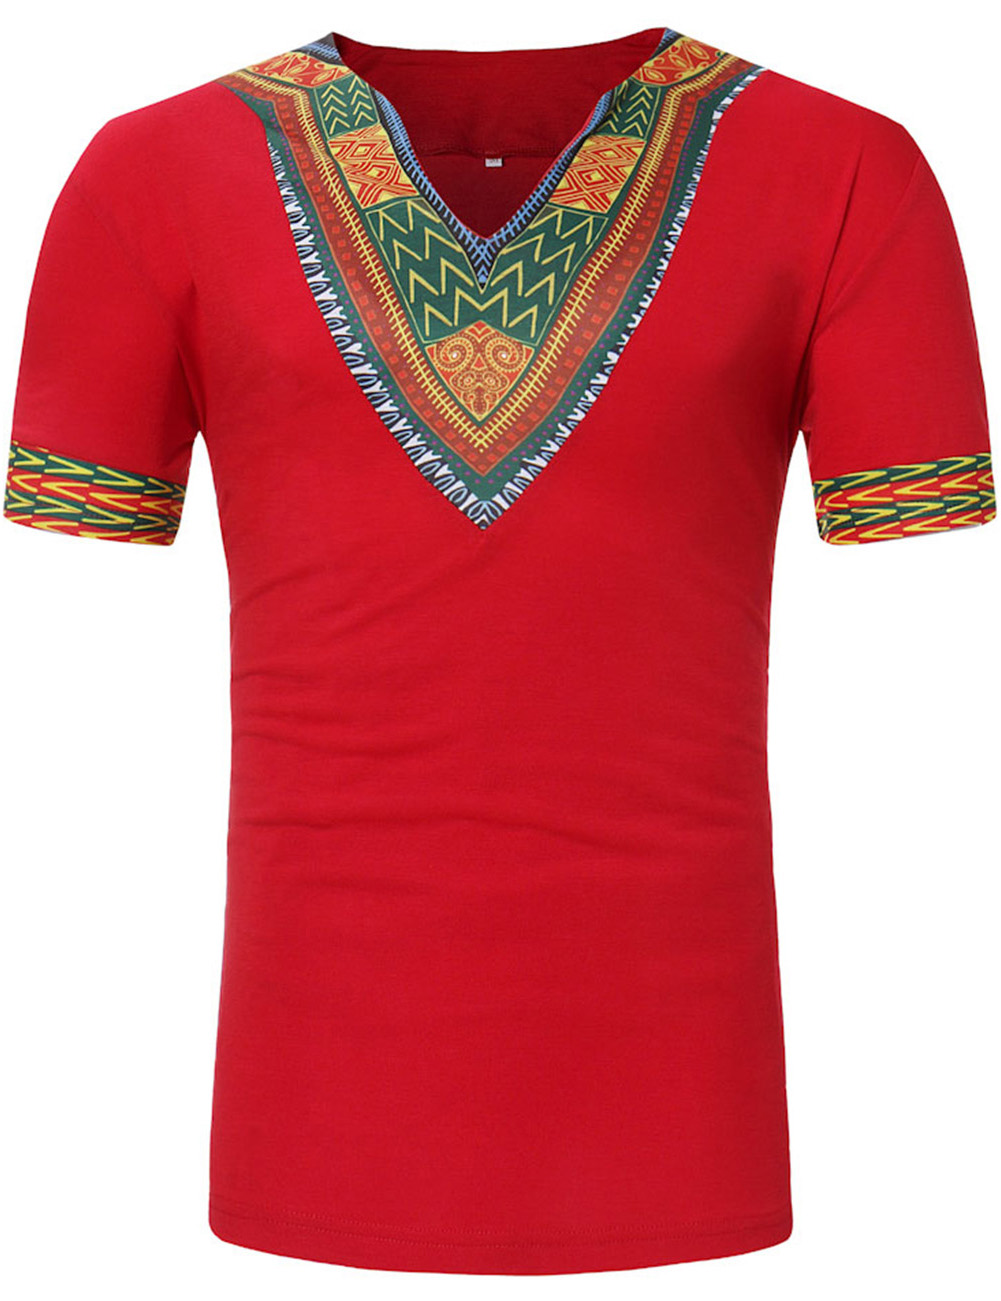 //cdn.affectcloud.com/hexinfashion/upload/imgs/African_Clothing/African_Men_T-shirt/T190098-RD1/T190098-RD1-201911055dc1339320524.jpg